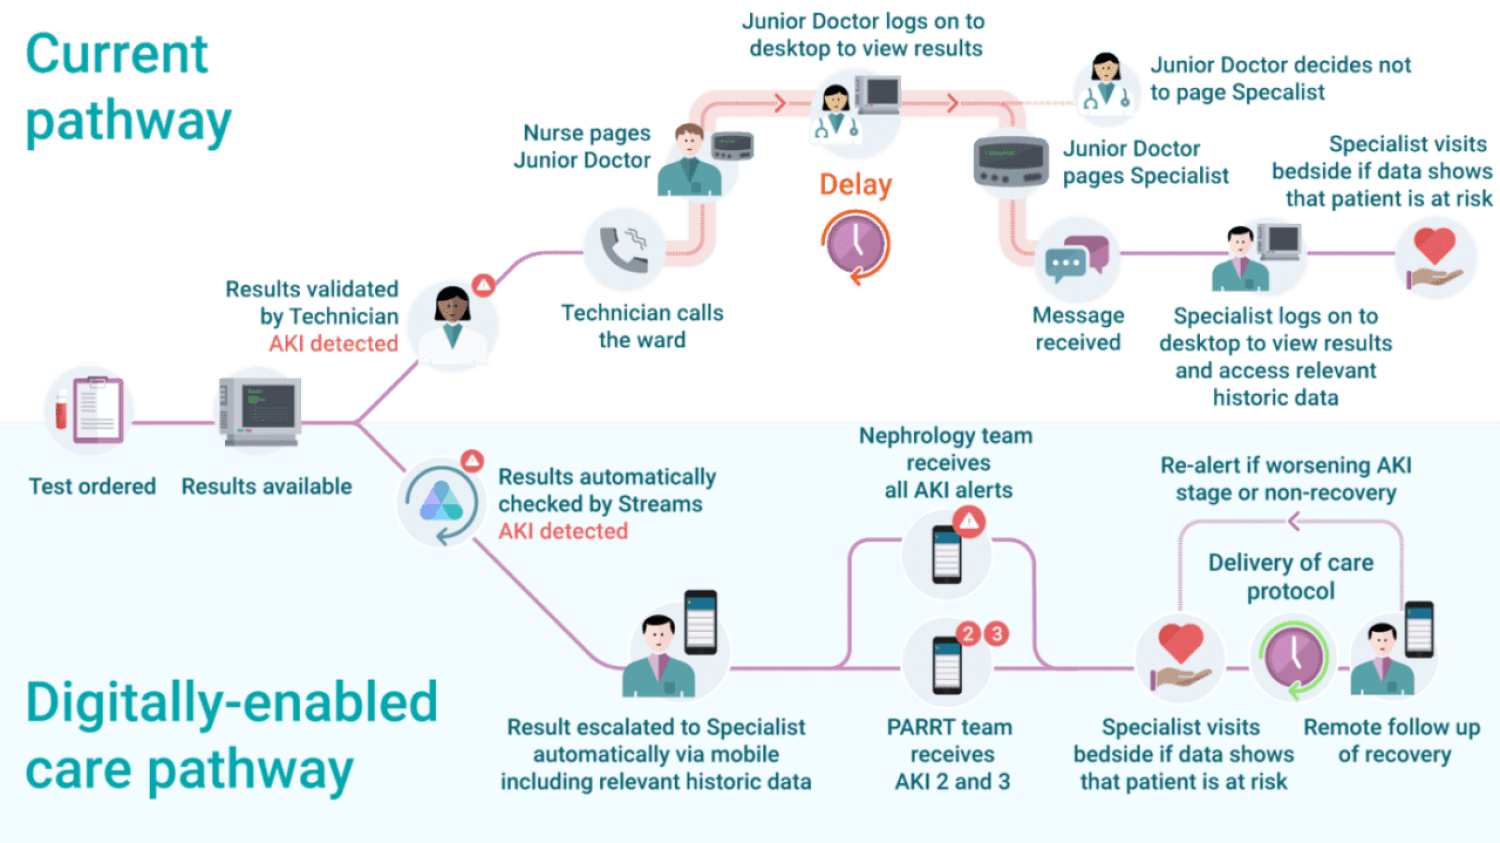 An illustration how an at-risk patient is flagged in the traditional vs. digitally-enabled care pathway. Deepmind Image